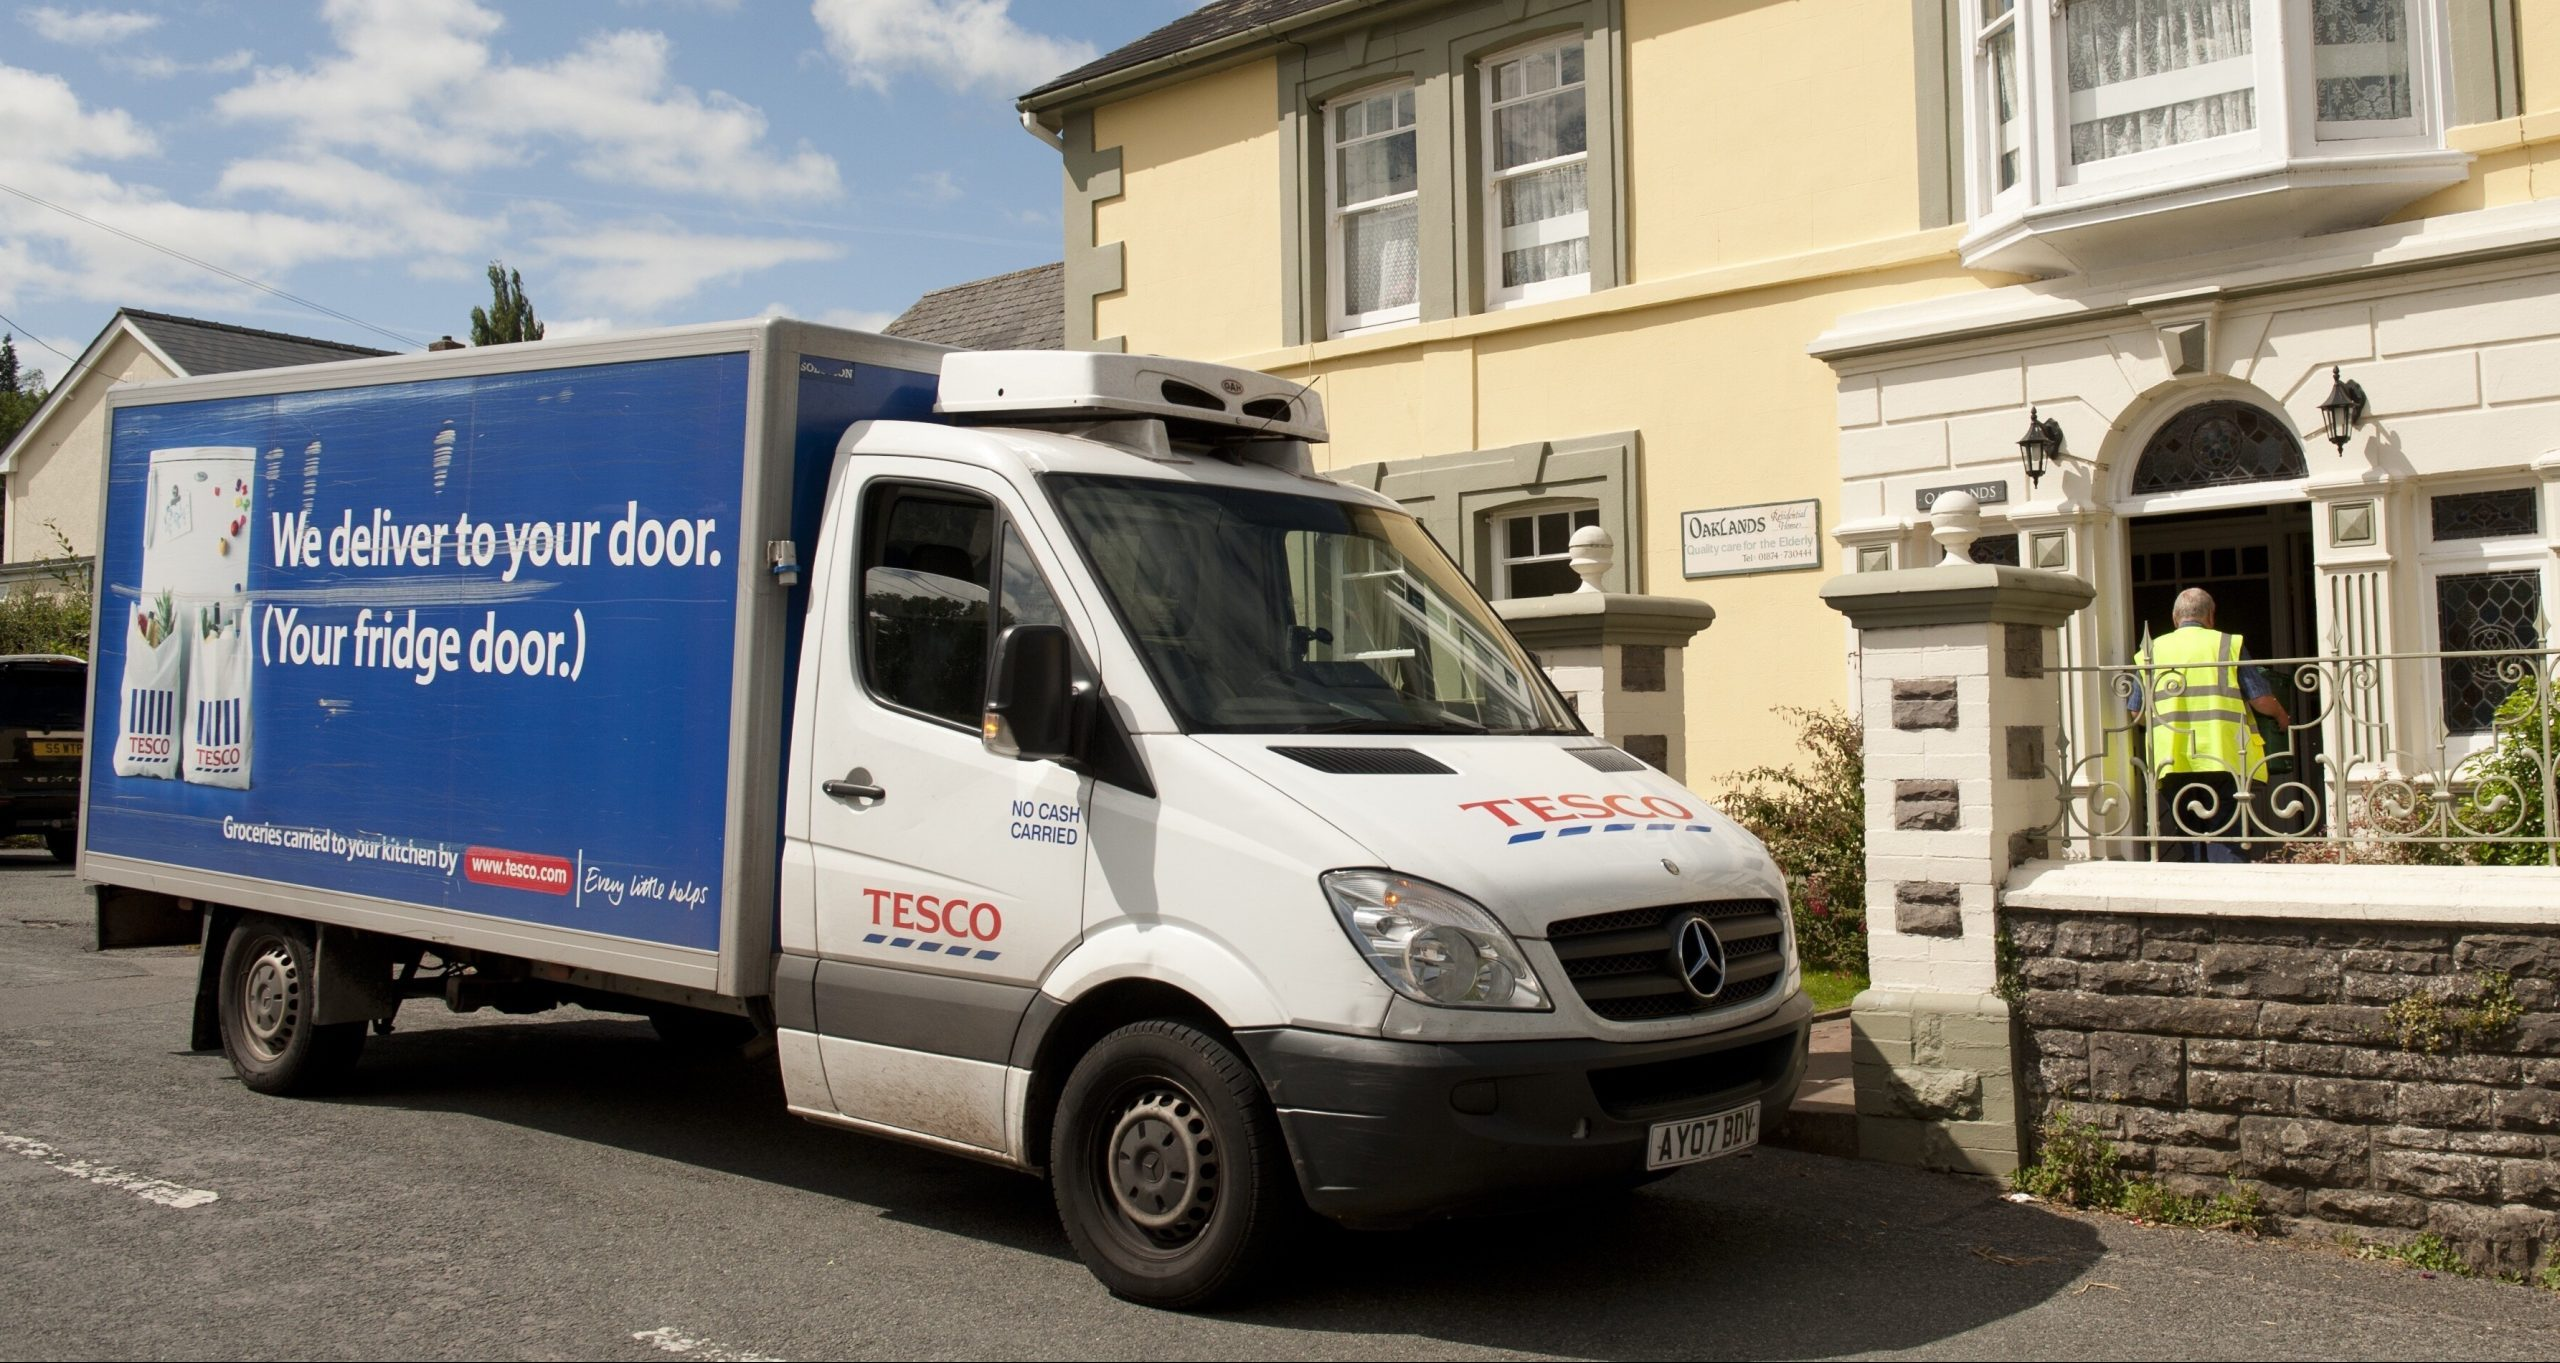 Tesco announces 120,000 new home delivery slots – here's how to get one